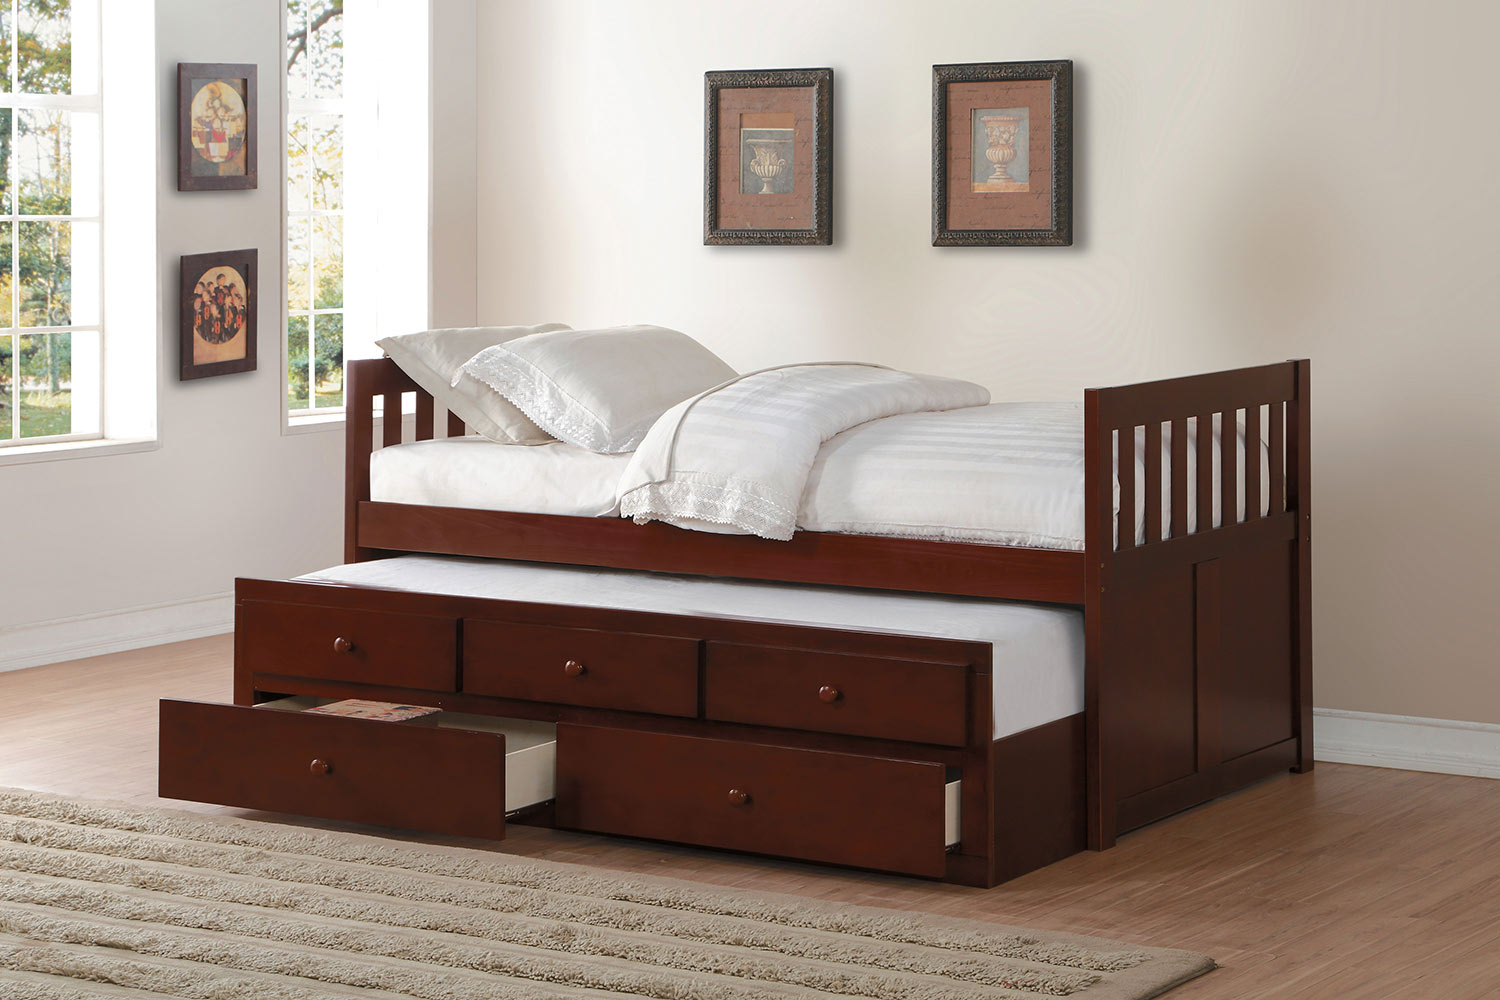 Homelegance Rowe Twin Bed with Trundle and Two Storage Drawers - Dark Cherry